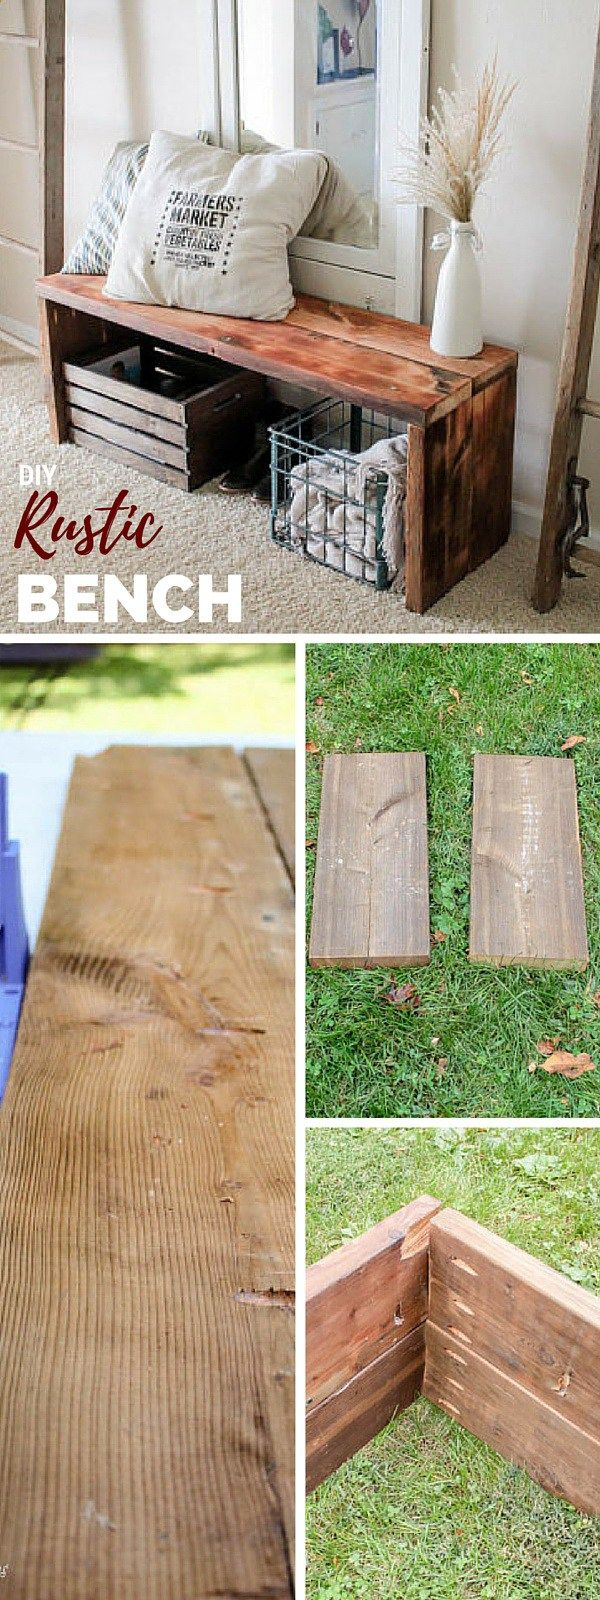 Rustic DIY Projects to add Warmth to